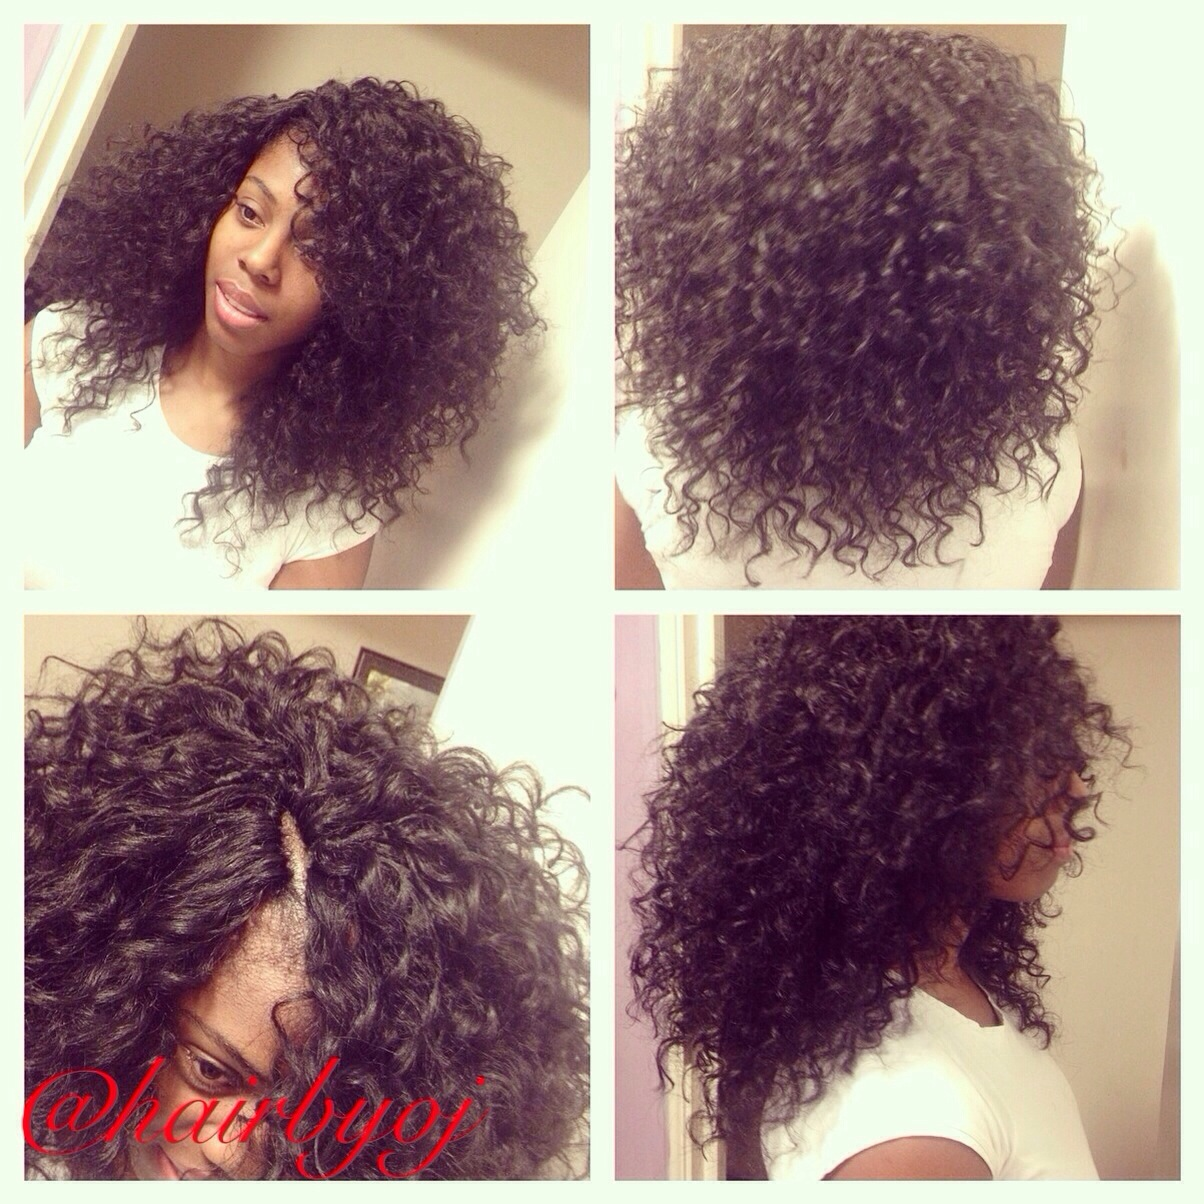 Crochet Hair Curl : Chest length curly crochet braids with versatile side and middle ...